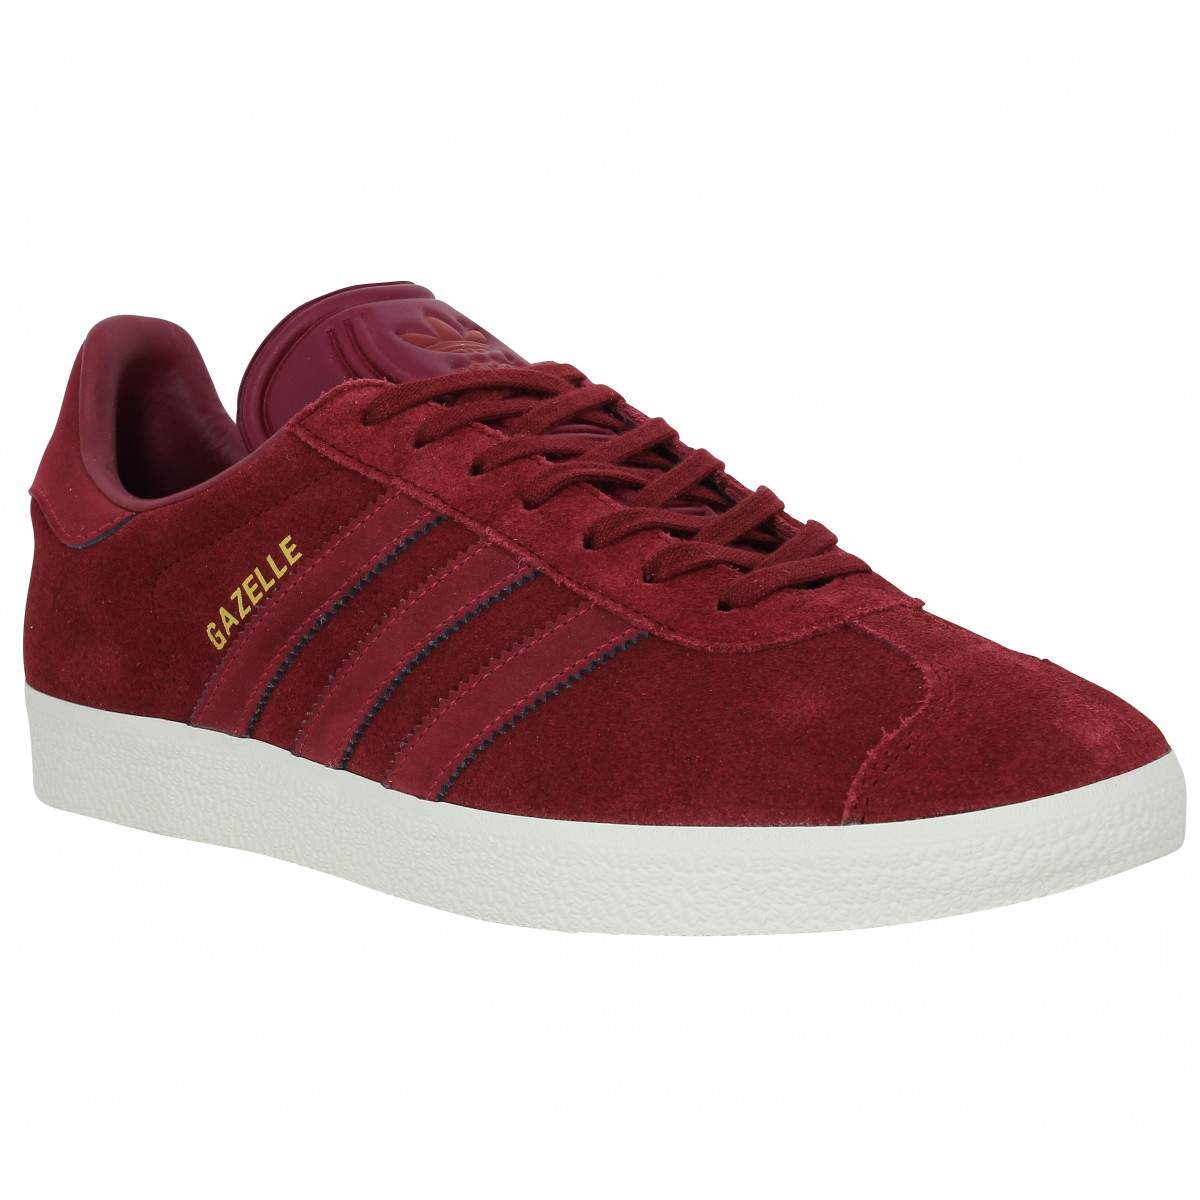 Gazelle Burgundy Sneakers Adidas Men Velours OSxx4qwd